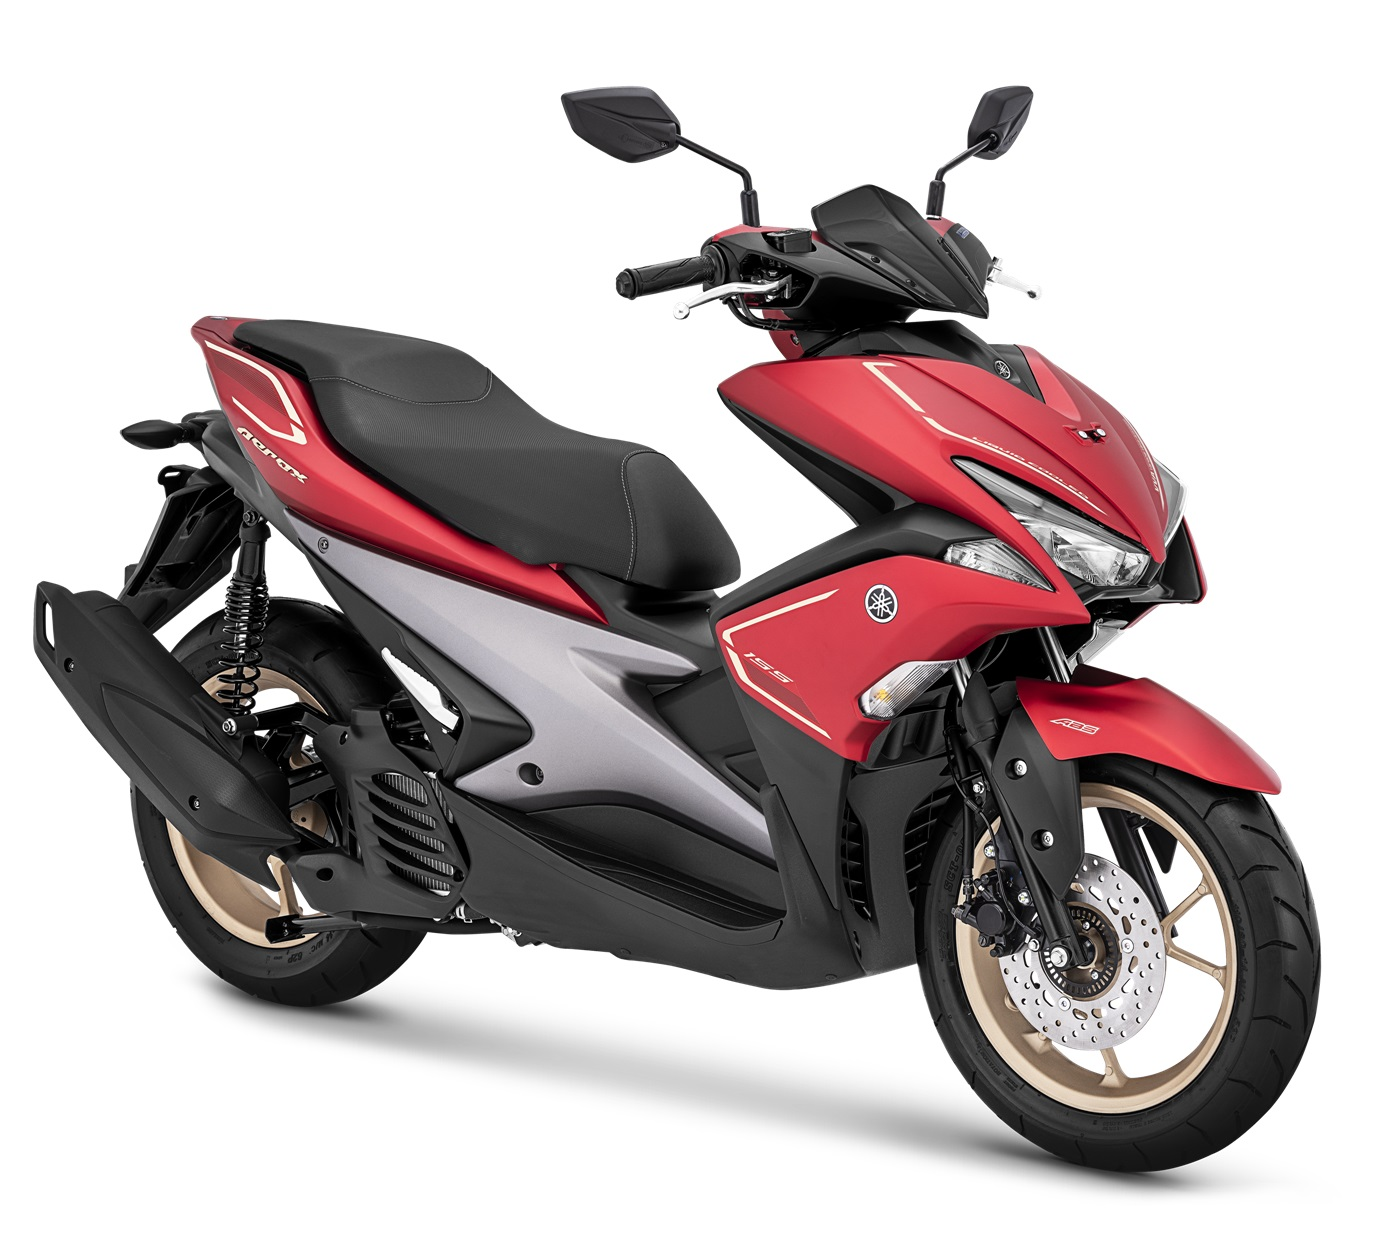 2019 Yamaha Aerox 155 VVA S-Version Matte Red